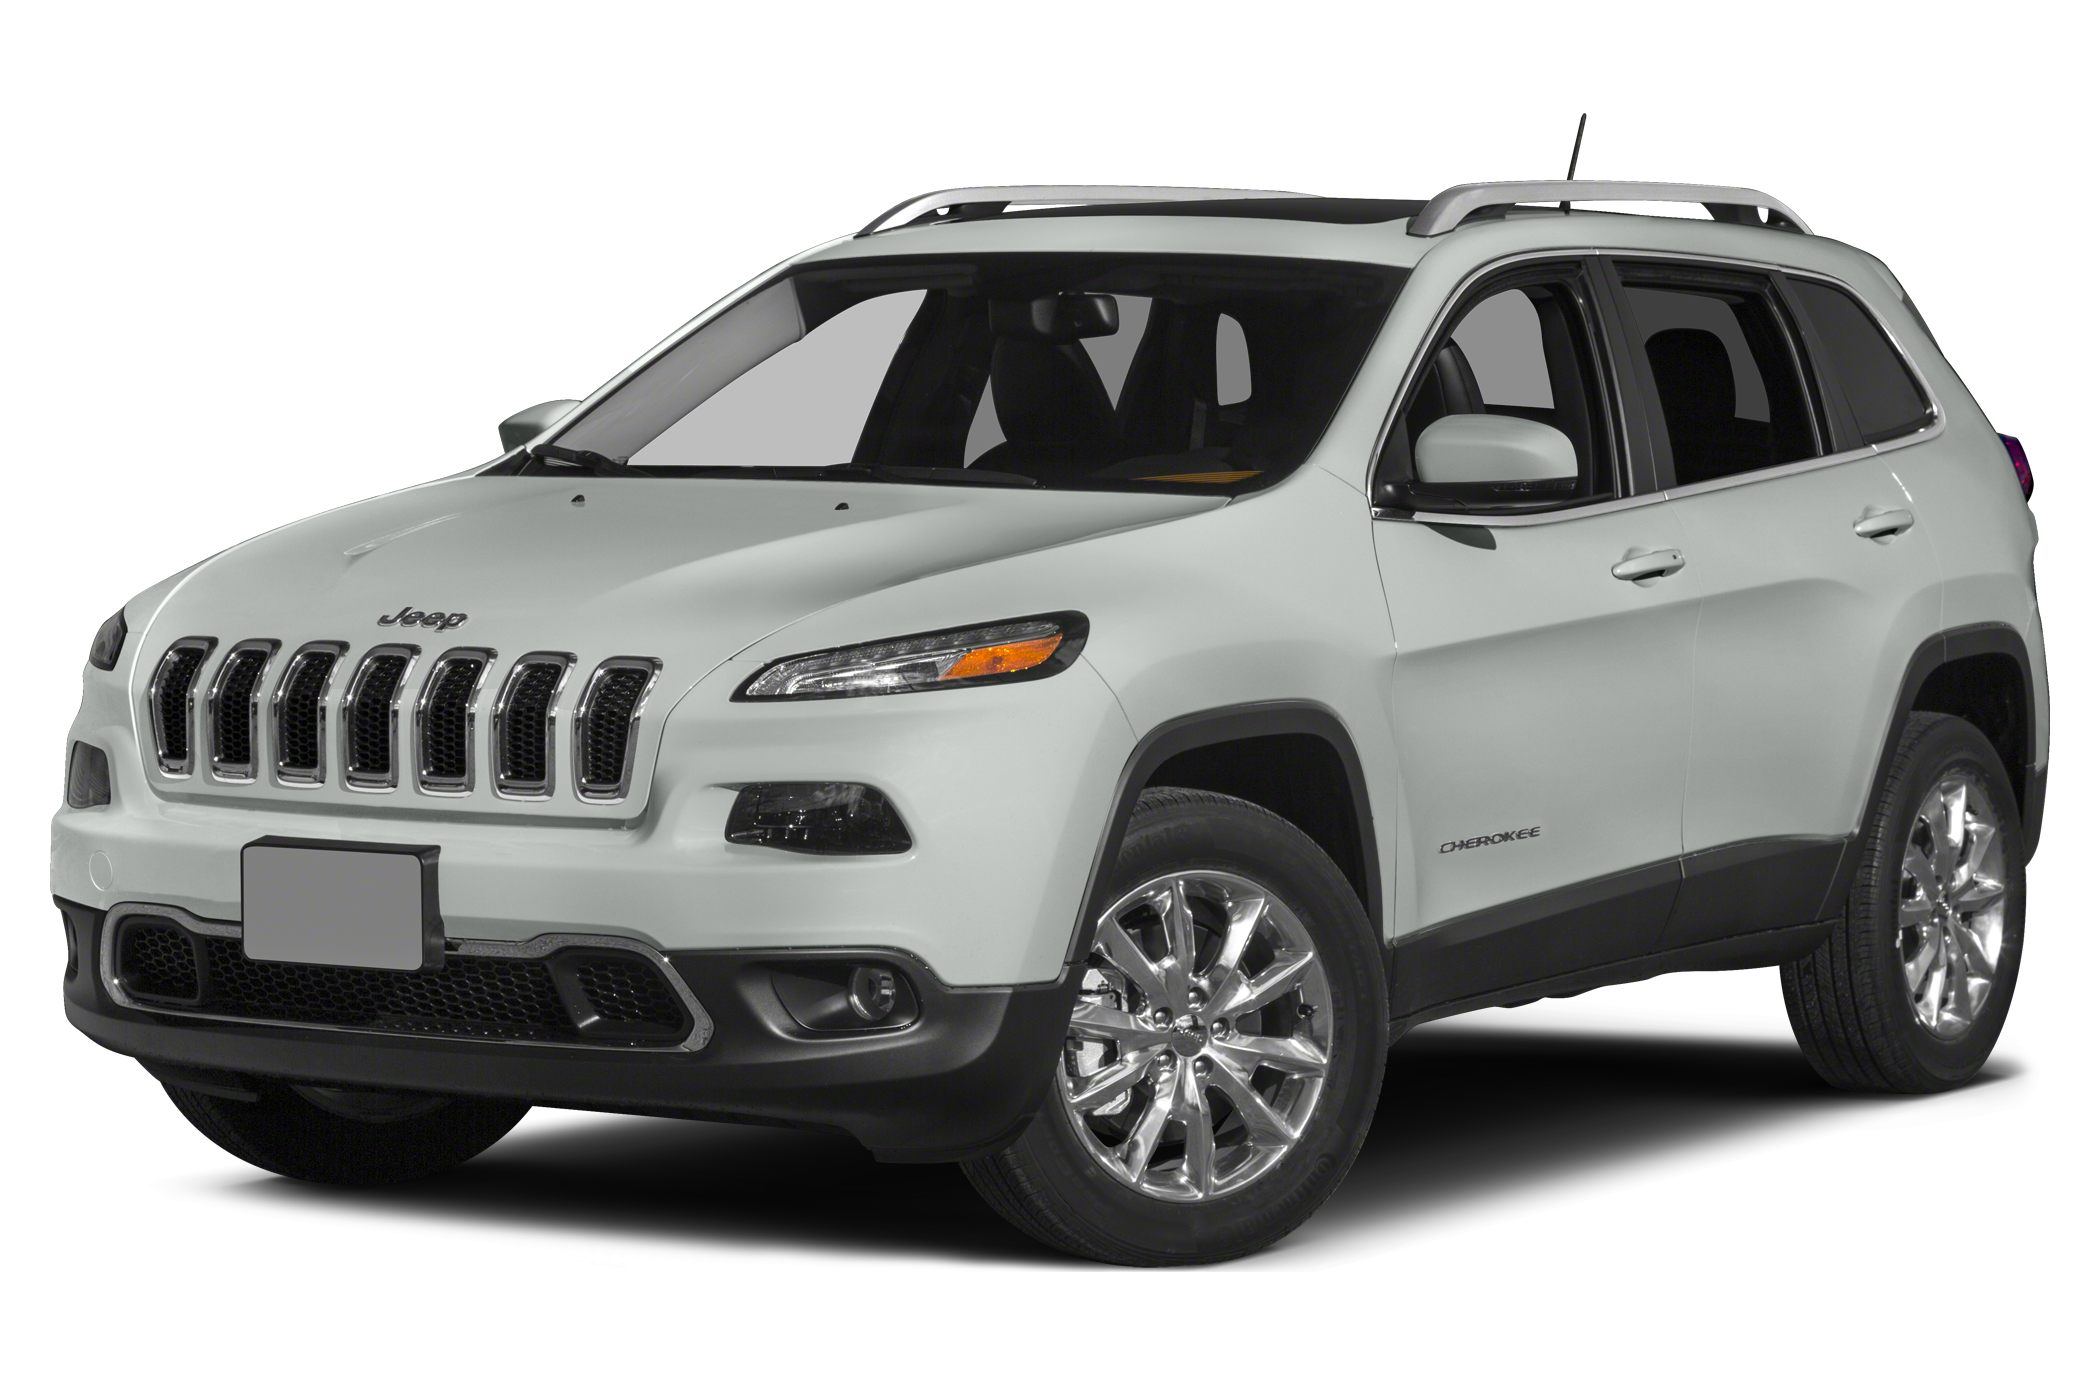 2015 Jeep Cherokee Limited SUV for sale in Elizabethtown for $33,222 with 10 miles.